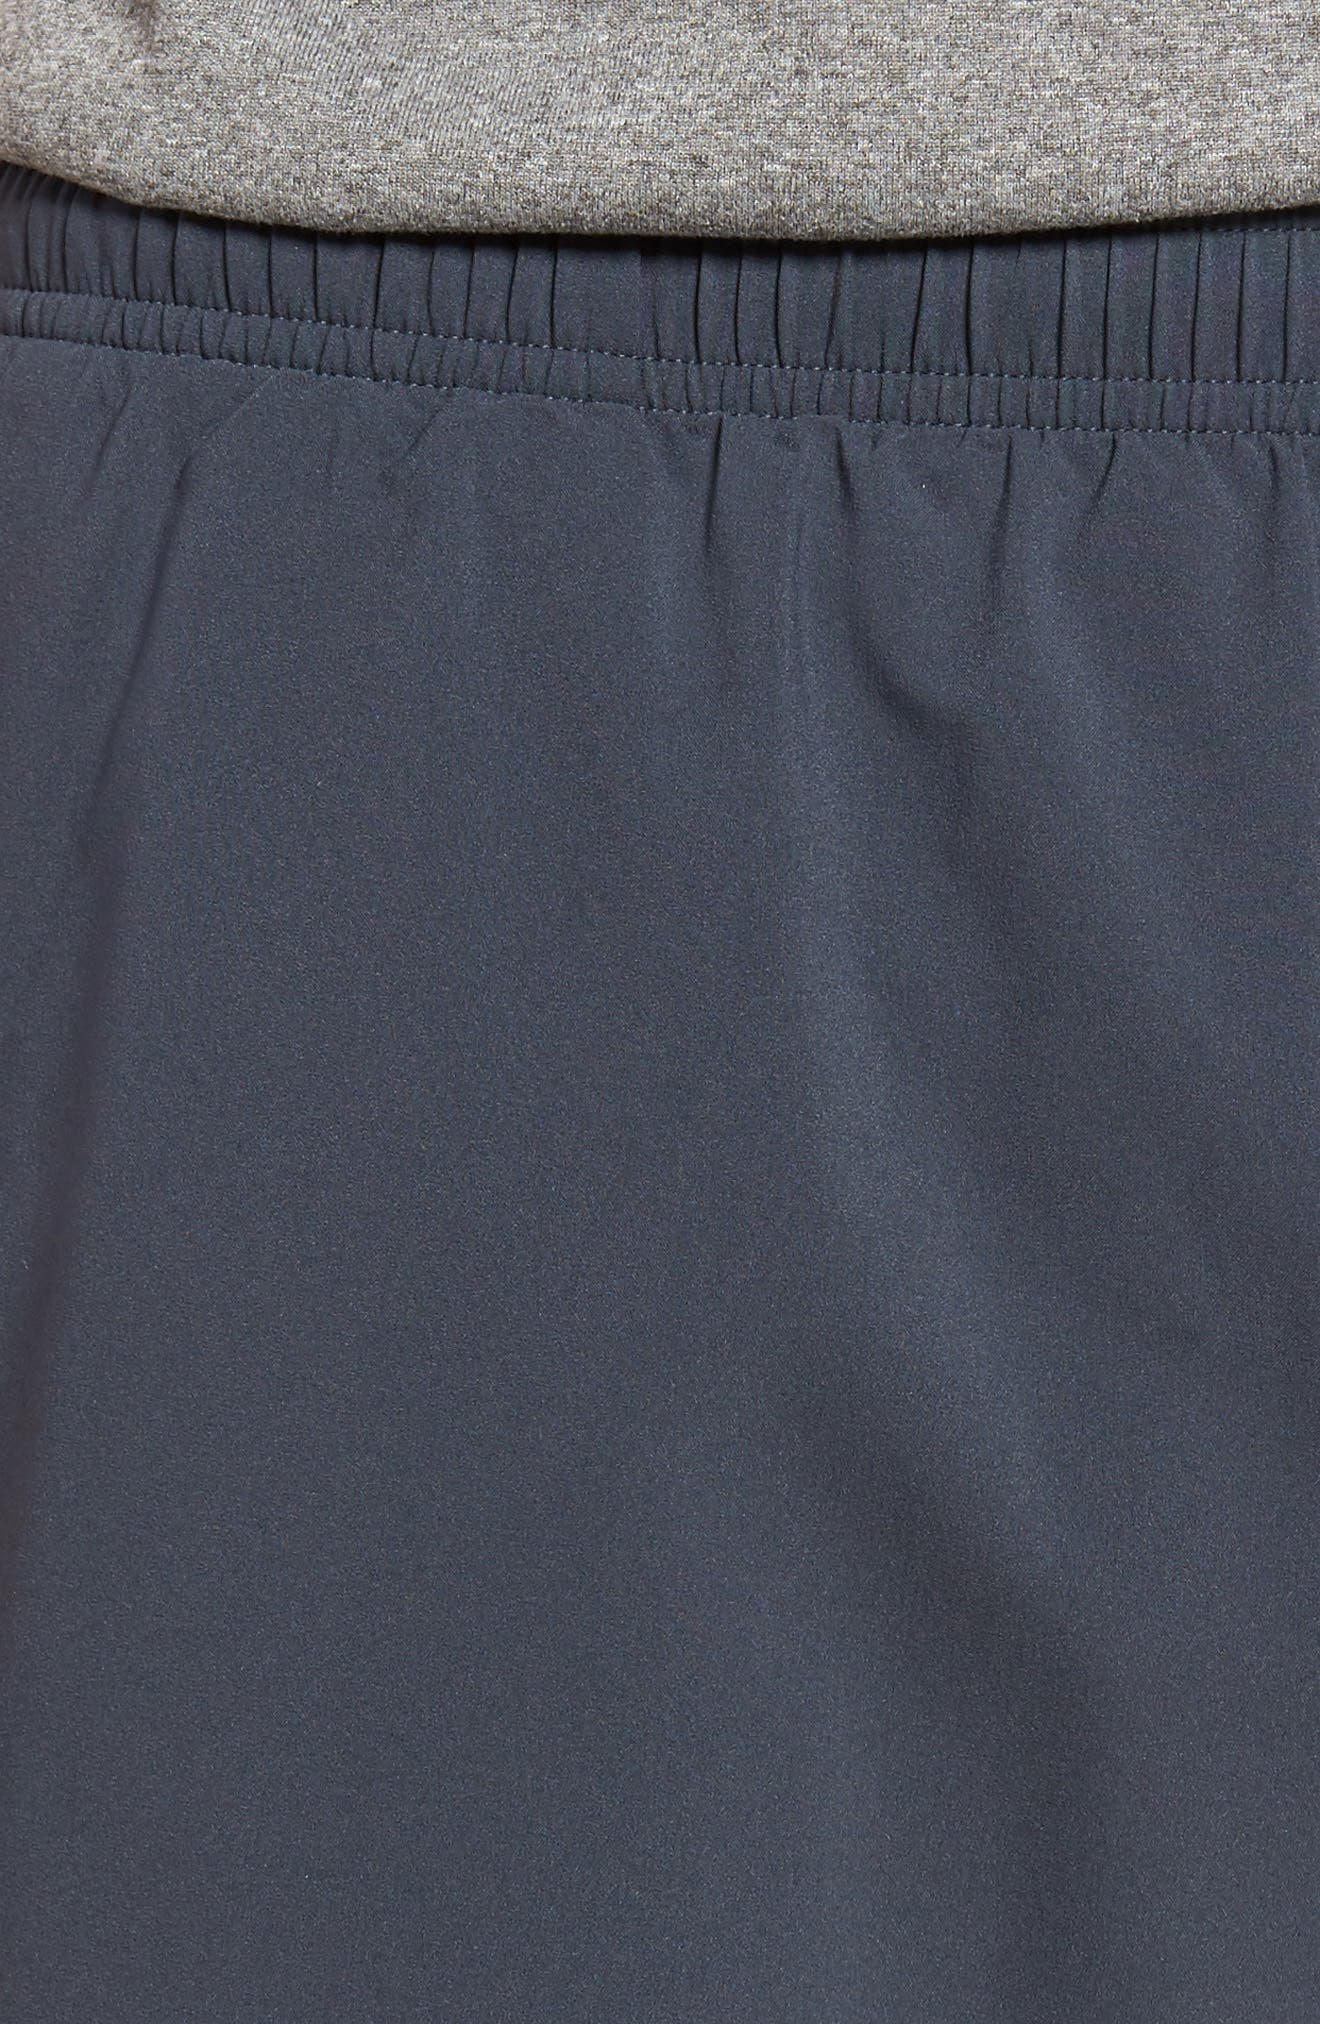 Launch Running Shorts,                             Alternate thumbnail 4, color,                             Stealth Gray